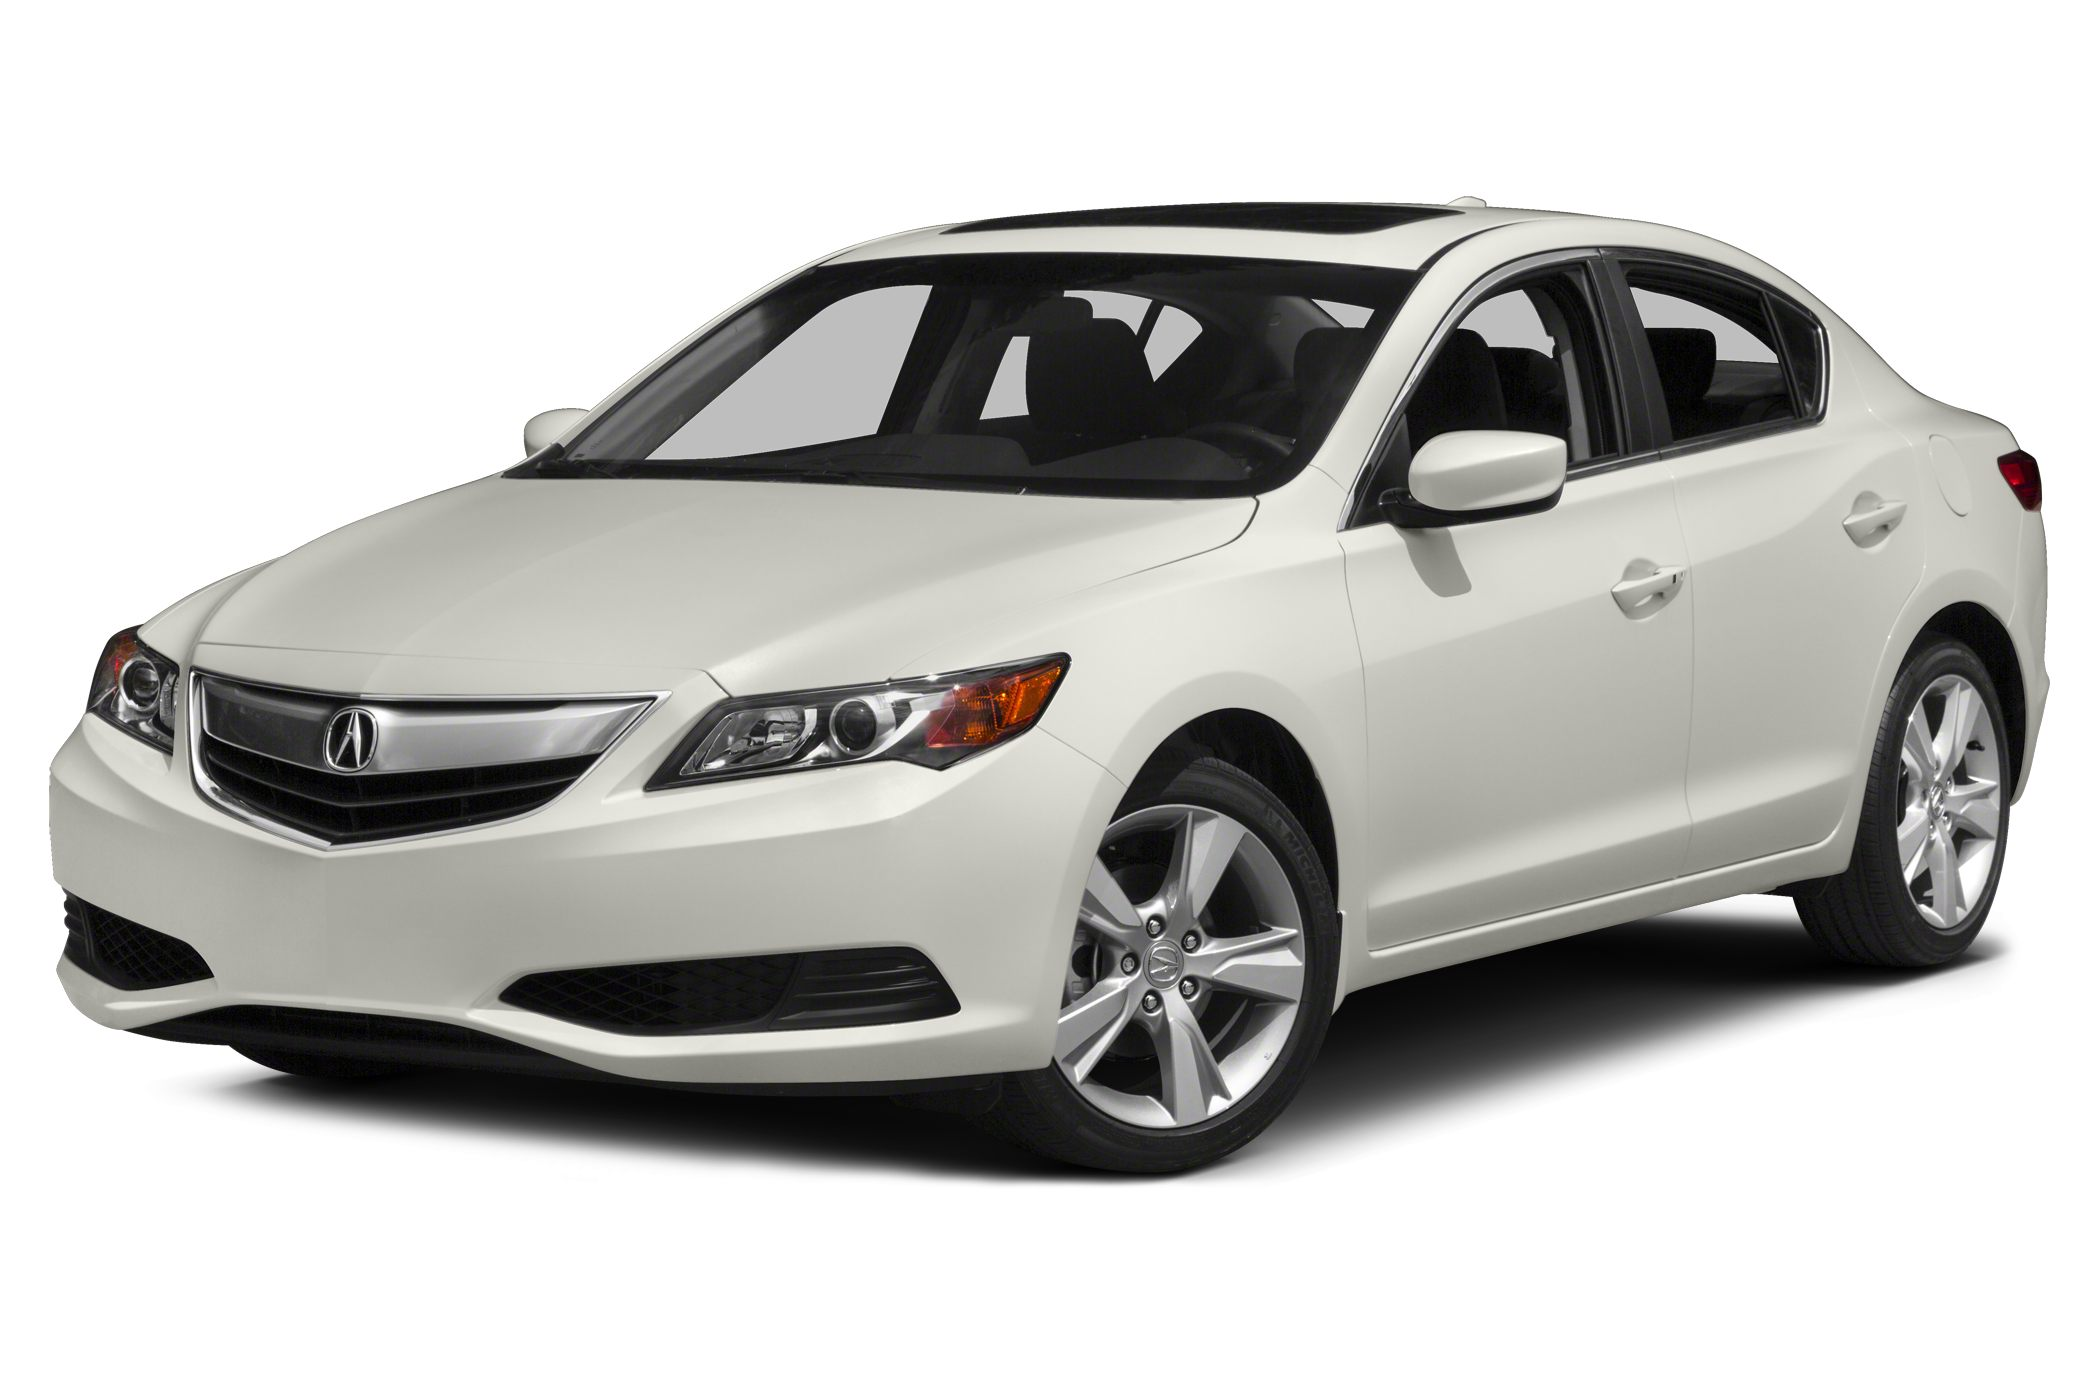 2015 Acura ILX 2.0L Sedan for sale in Columbus for $30,245 with 100 miles